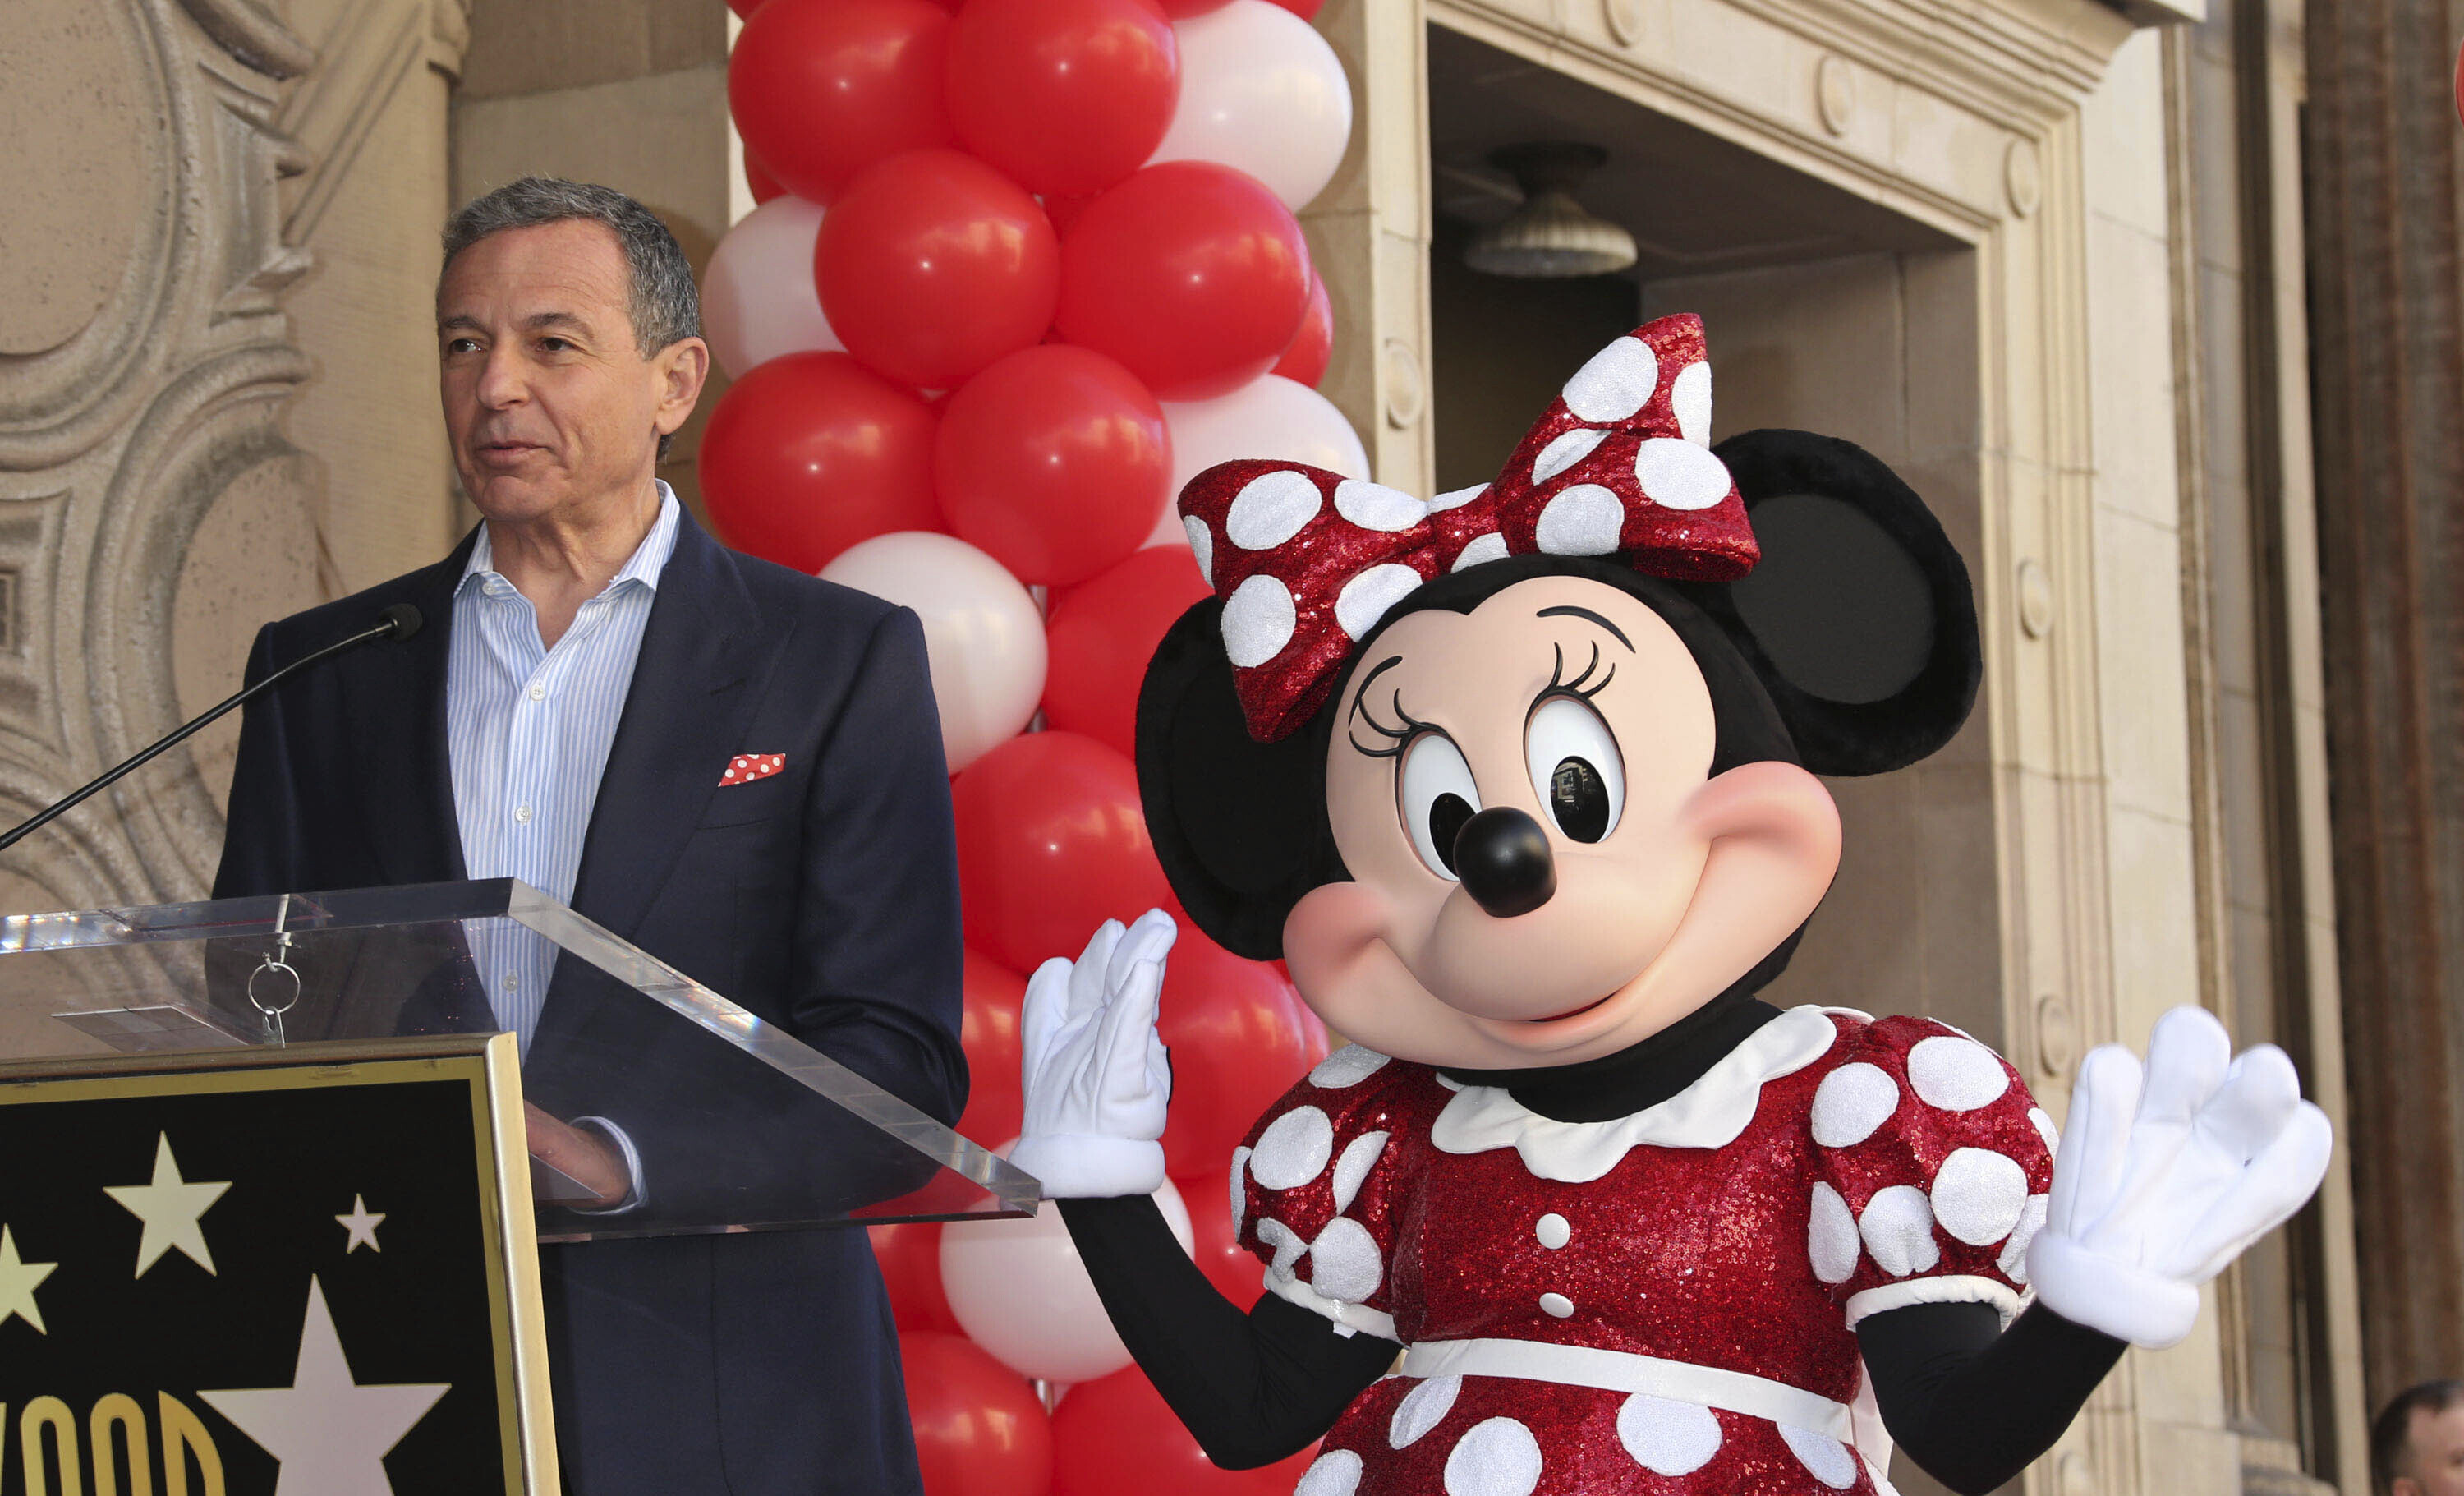 Photo by: RE/Westcom/STAR MAX/IPx 2020 2/25/20 Bob Iger will step down as Disney CEO, effective immediately. STAR MAX File Photo: 1/22/18 Bob Iger at a star ceremony for the 90th Anniversary of Minnie Mouse on The Hollywood Walk Of Fame in Hollywood, CA.